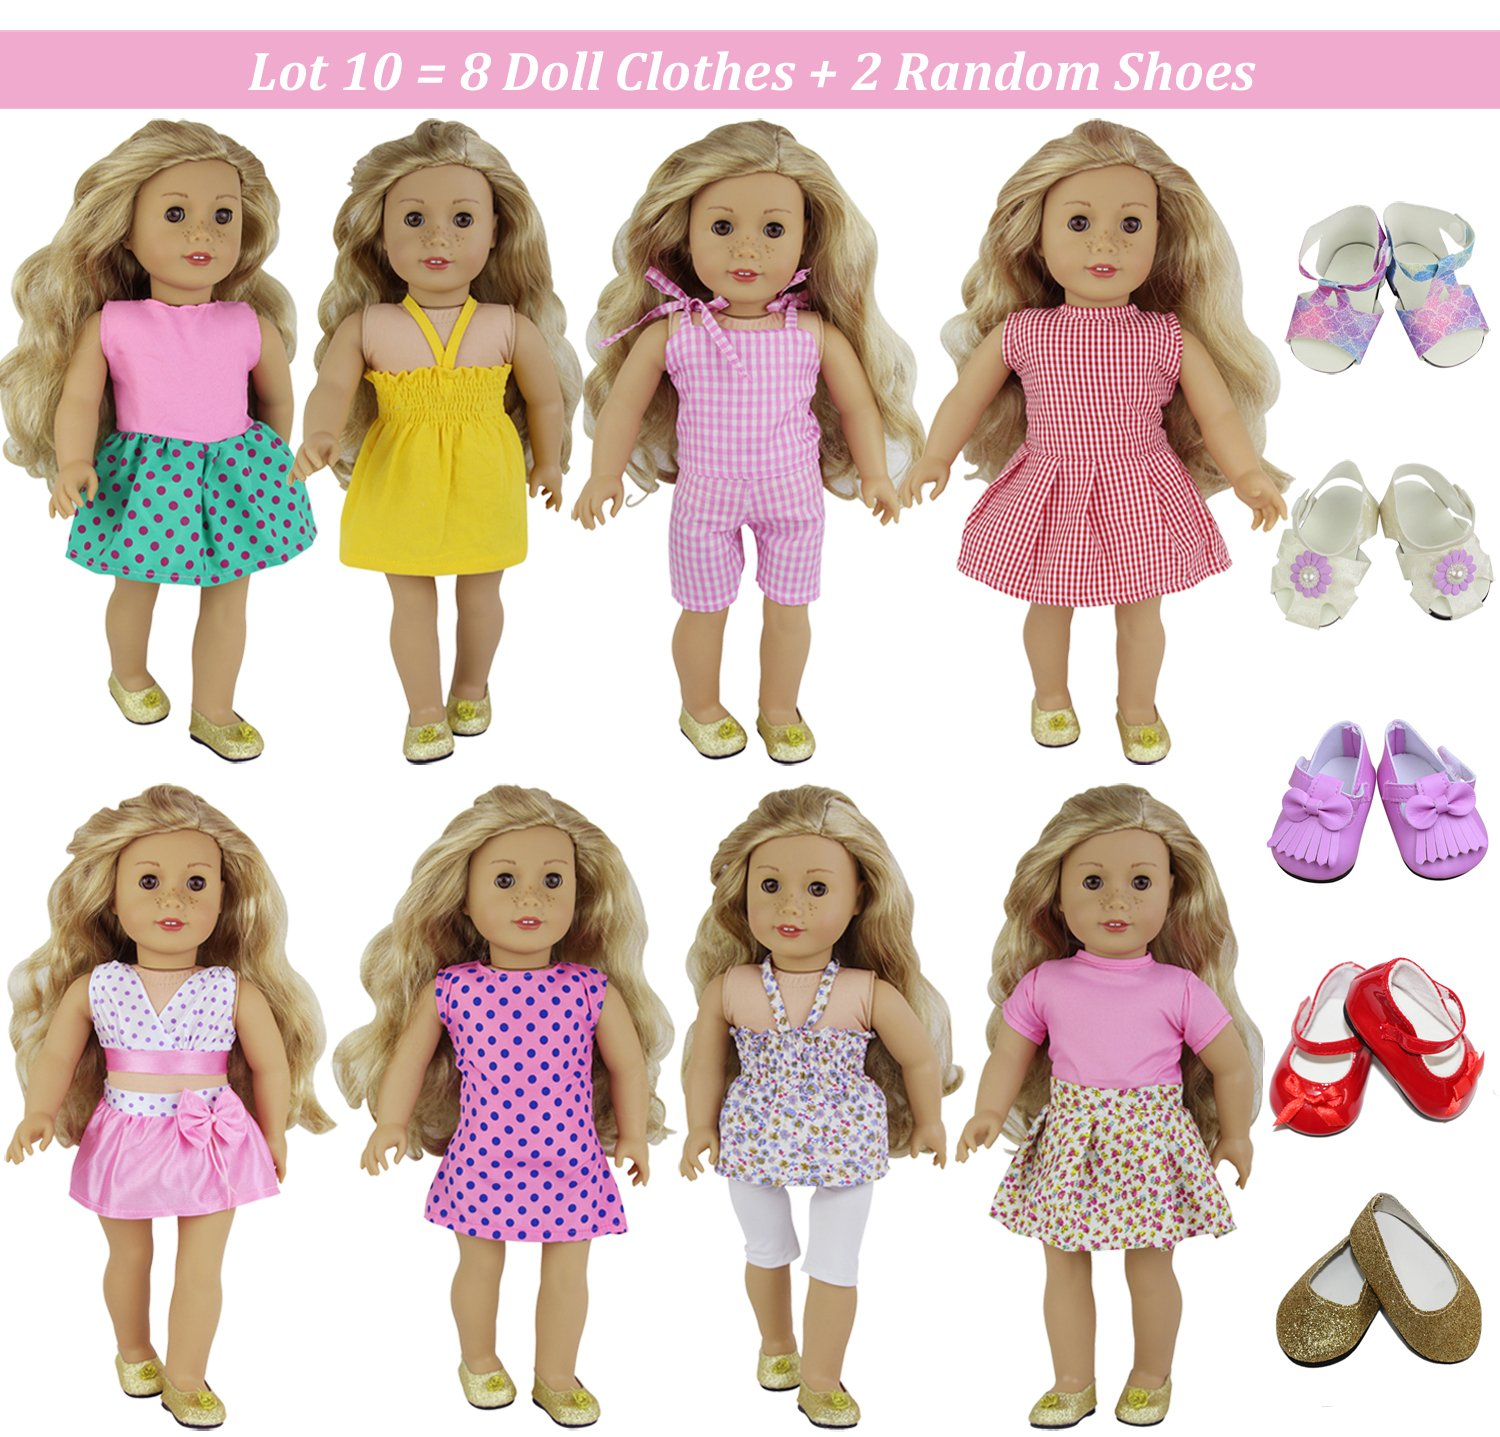 ZITA ELEMENT 10 Sets Clothes & Accessories for American Girl Doll | Handmade Fashion Oufits, Daily/Party Dress, Shoes Fits 16-18 Inch Dolls